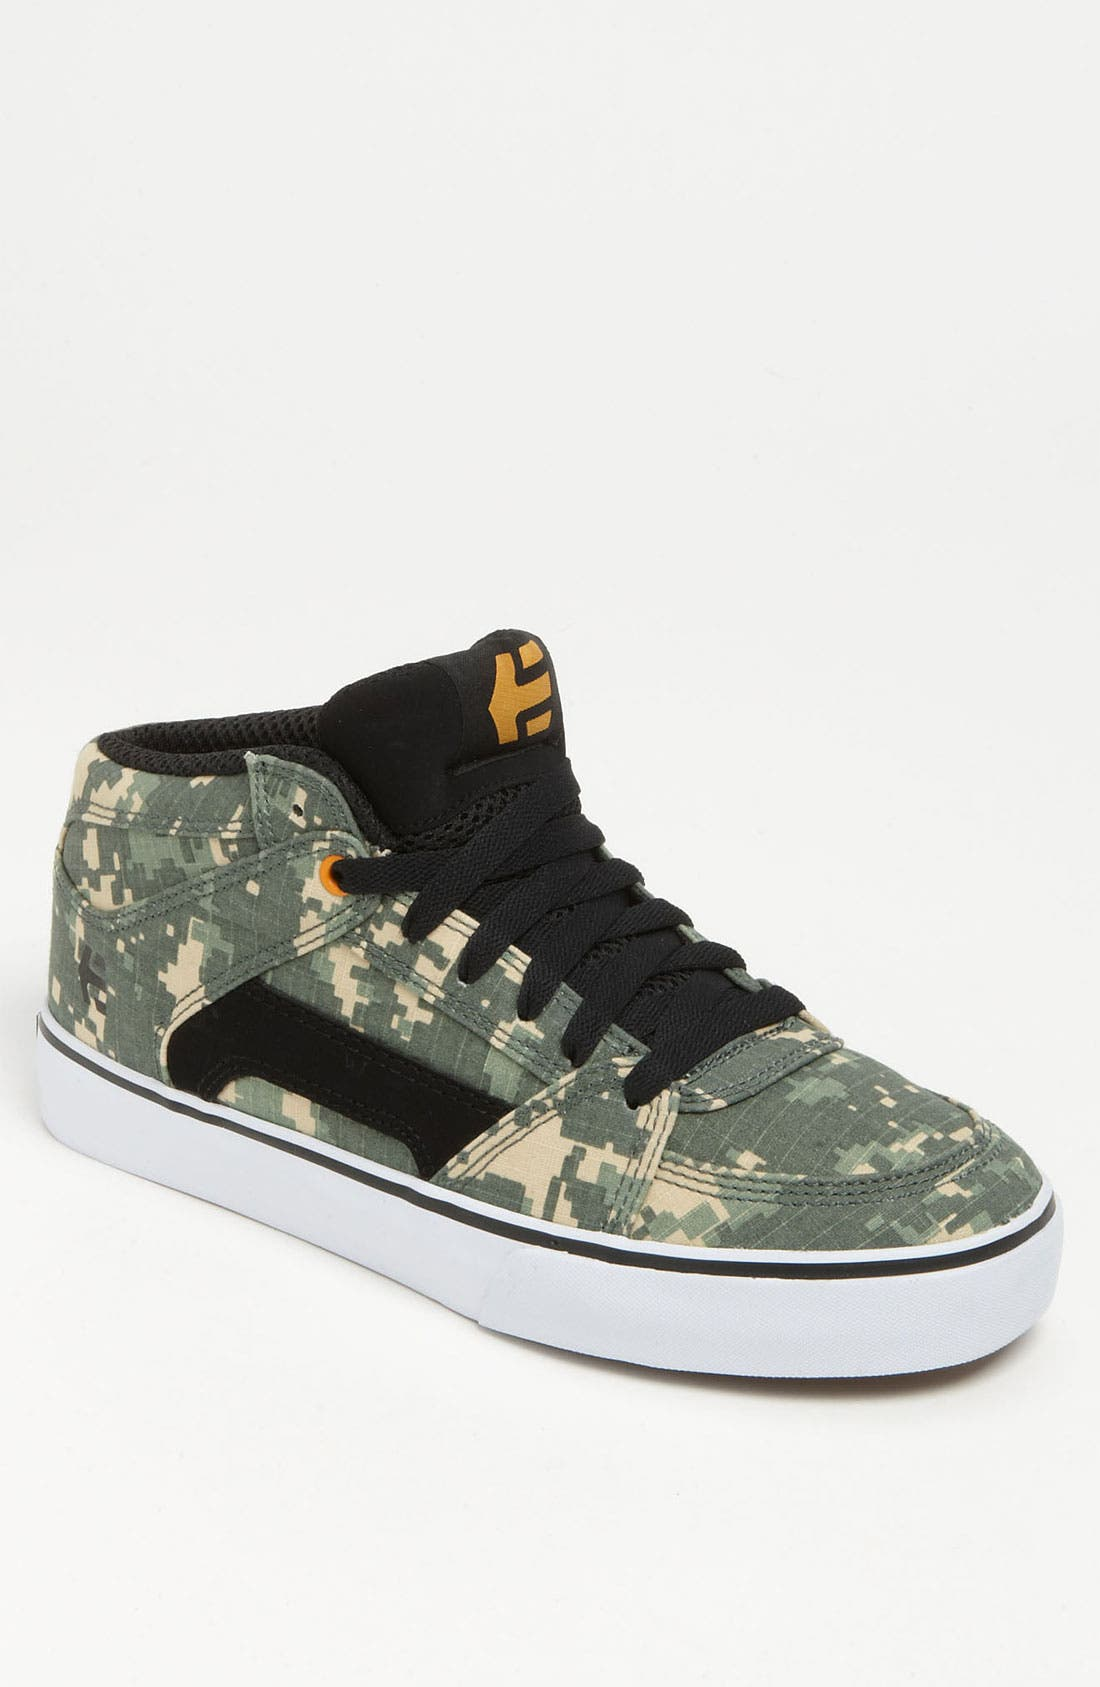 Main Image - Etnies 'RVM' Skate Shoe (Men)